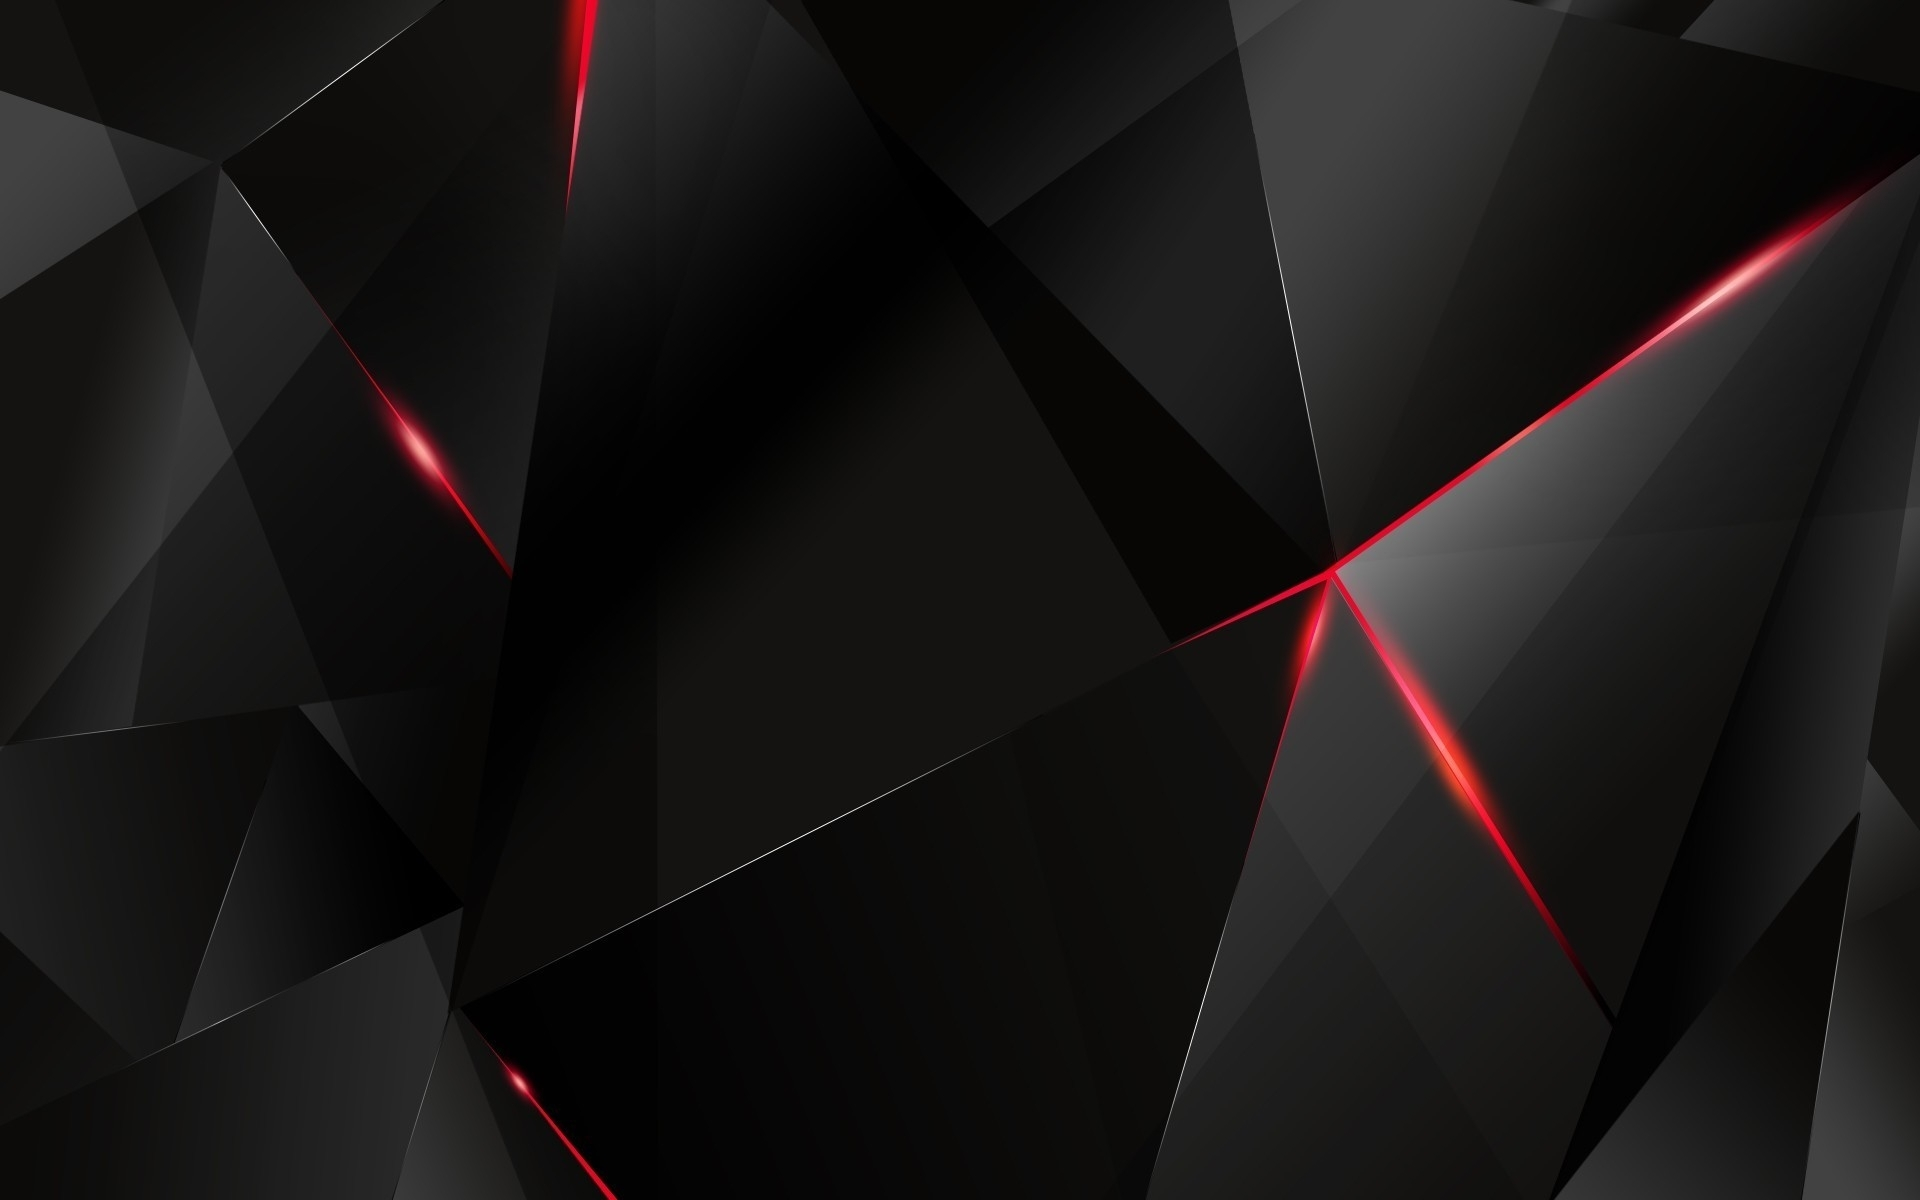 black and red wallpaper 27653 1920x1200 px ~ hdwallsource